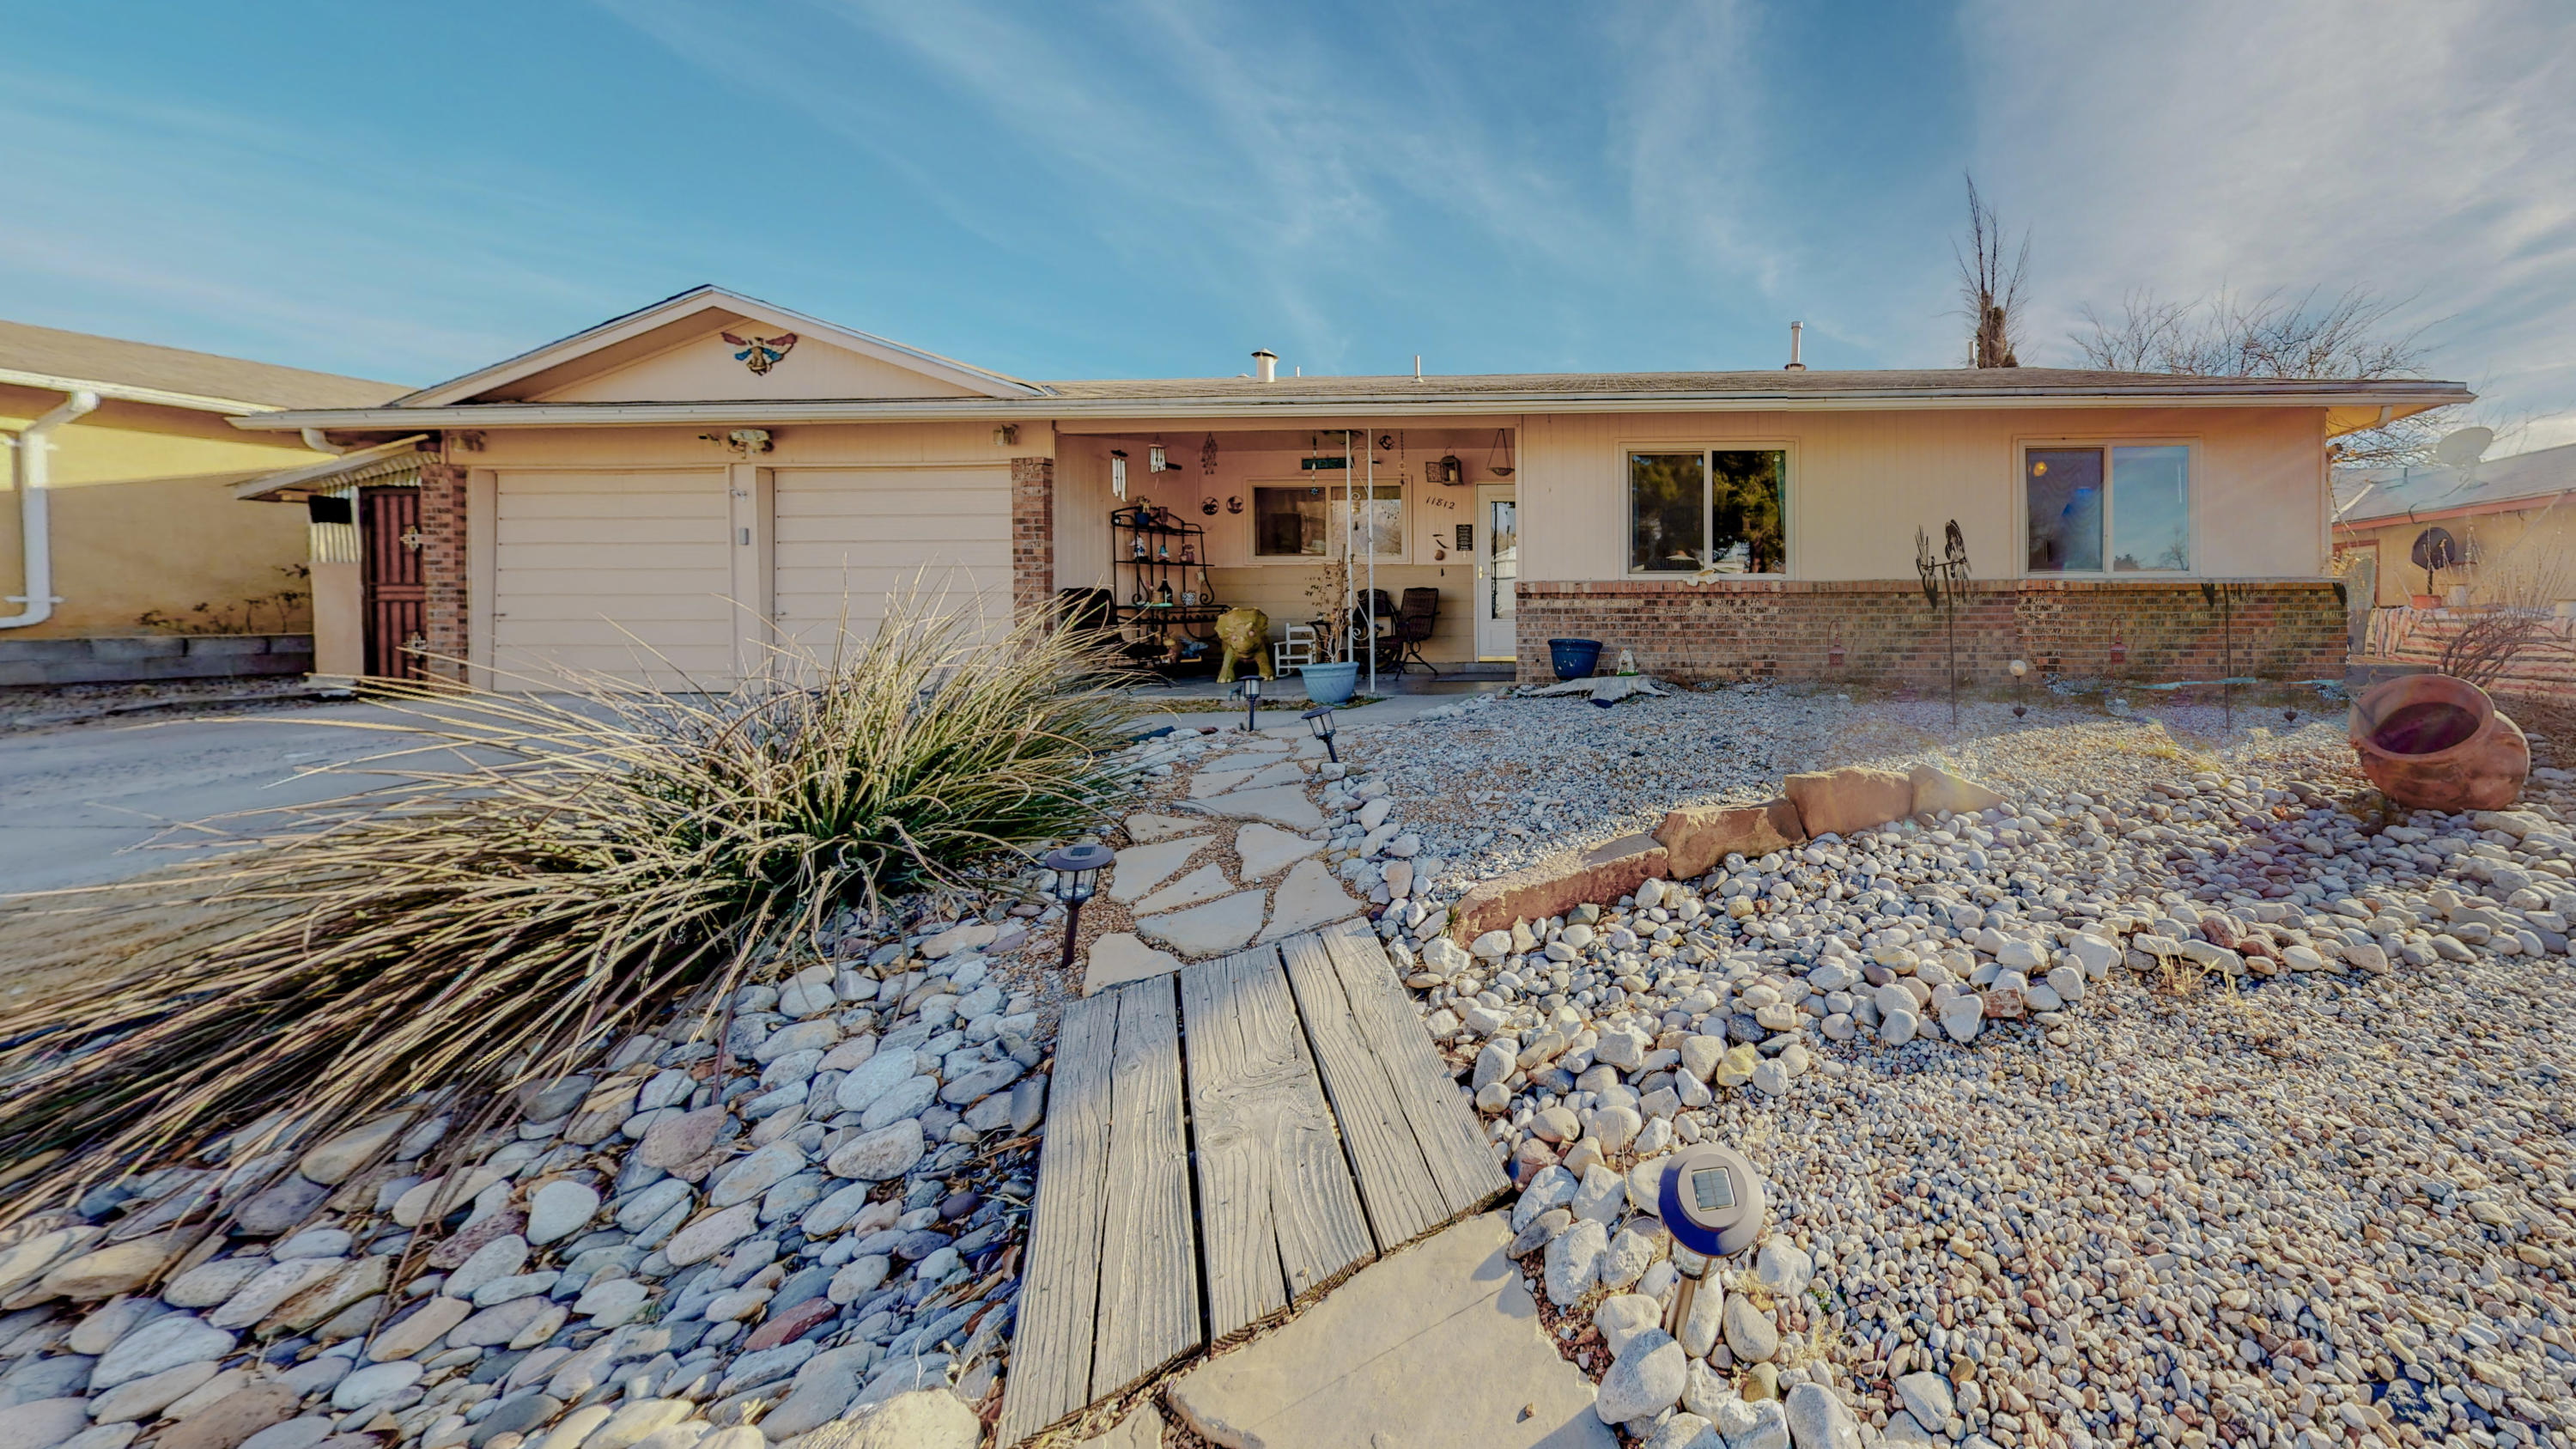 Great 3 bedroom single story home located in Albuquerque's North East Heights. This home offers granite counter tops, refinished cabinets and subway tile backsplash in the kitchen. Updated bathrooms and vanities. Open concept living and dinning with a kitchen peninsula. Second living area or flex room. Back yard amenities include covered patio, inground swimming pool, built in fire pit and deck. Schedule your showing today.